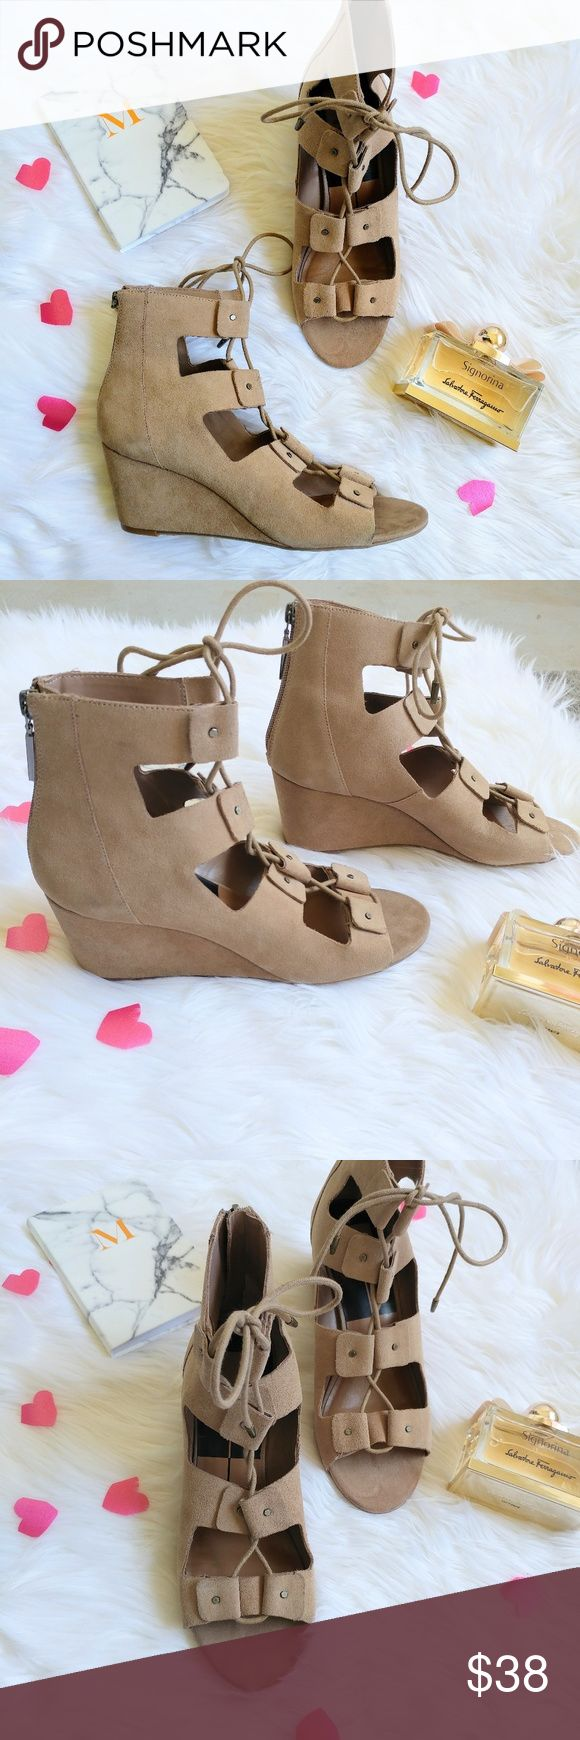 """Dolce Vita Suede Caged Lace Up Wedge Sandal Beige ?Dolce Vita Women's 'Lorena' Suede Lace-up Wedge Sandals  ?Original retail price: $130  ?Plush suede wedge sandals with a ghillie lace-up front.  ?Self-covered wedge heel, 2.25"""" (60mm).  ?Suede upper. Lace-up front. Back zip closure.  ?Man-made lining and sole. Lightly padded insole.  ?Women's Size 8  ?New without box. Never worn (see picture of the bottom sole)  ?No tags attached.   ?Message me if you have any questions. Thanks for stopping…"""